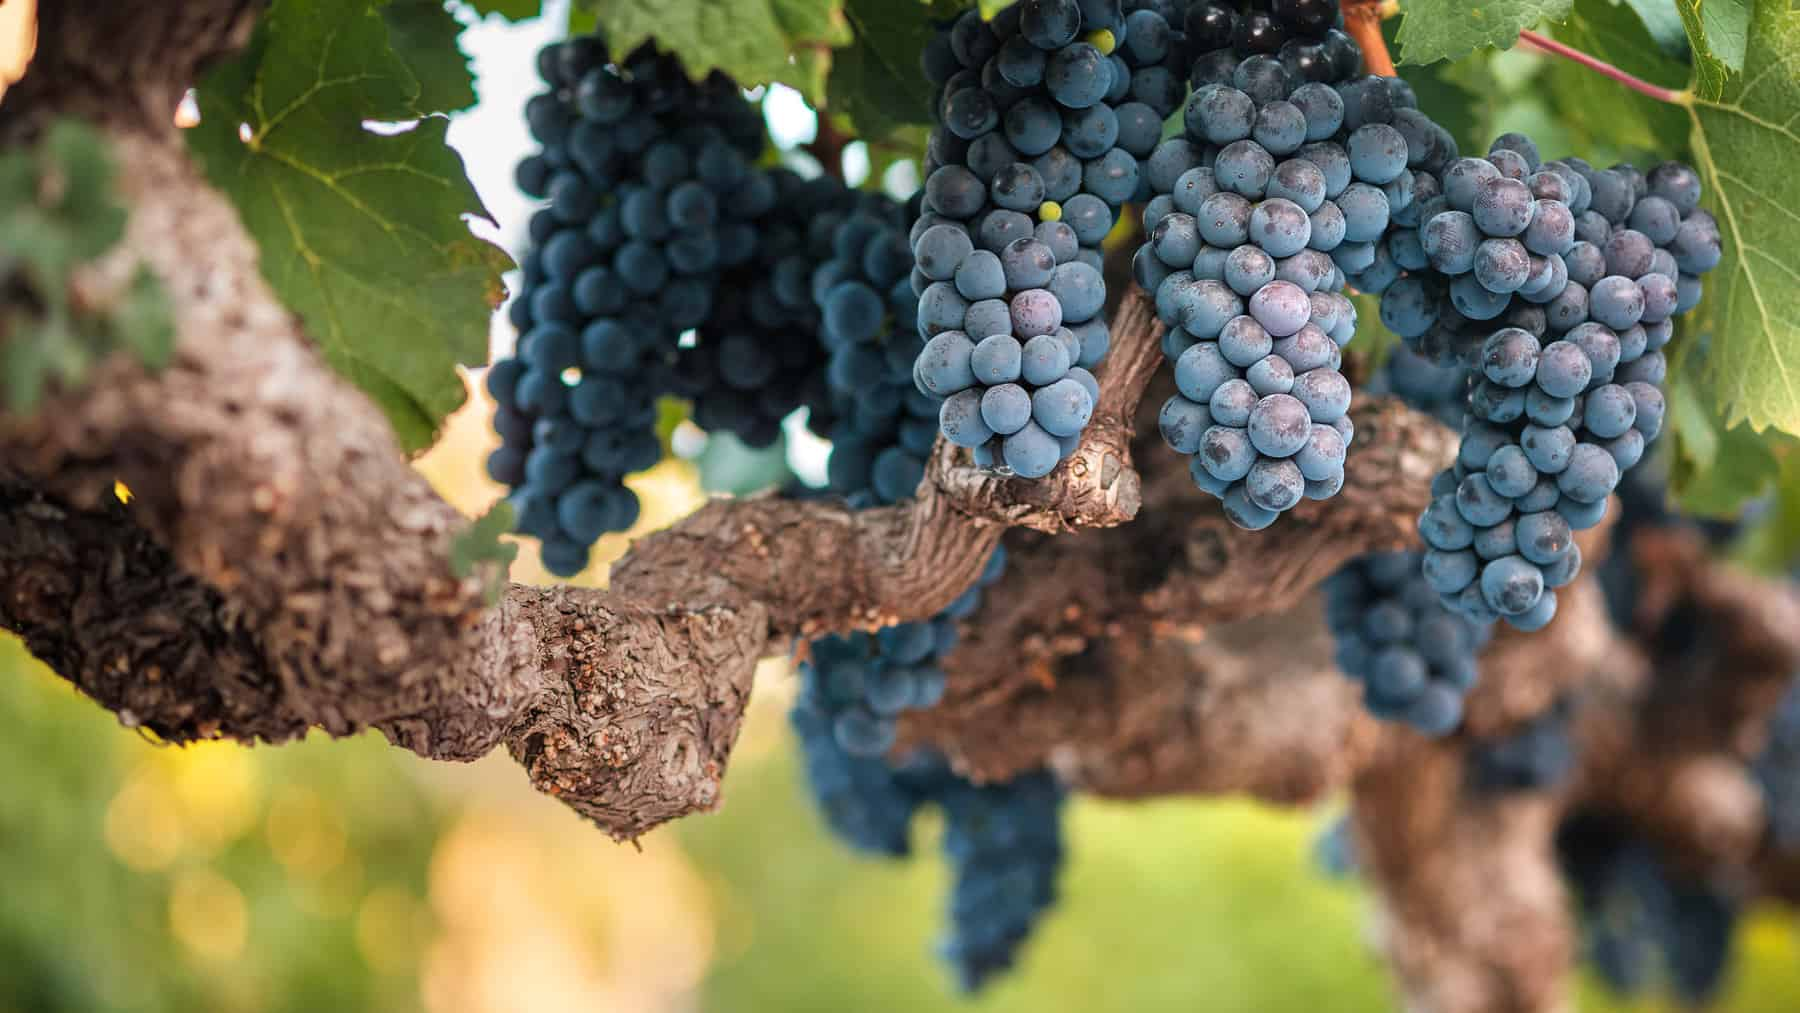 Bunches of cabernet wine grapes on old vine